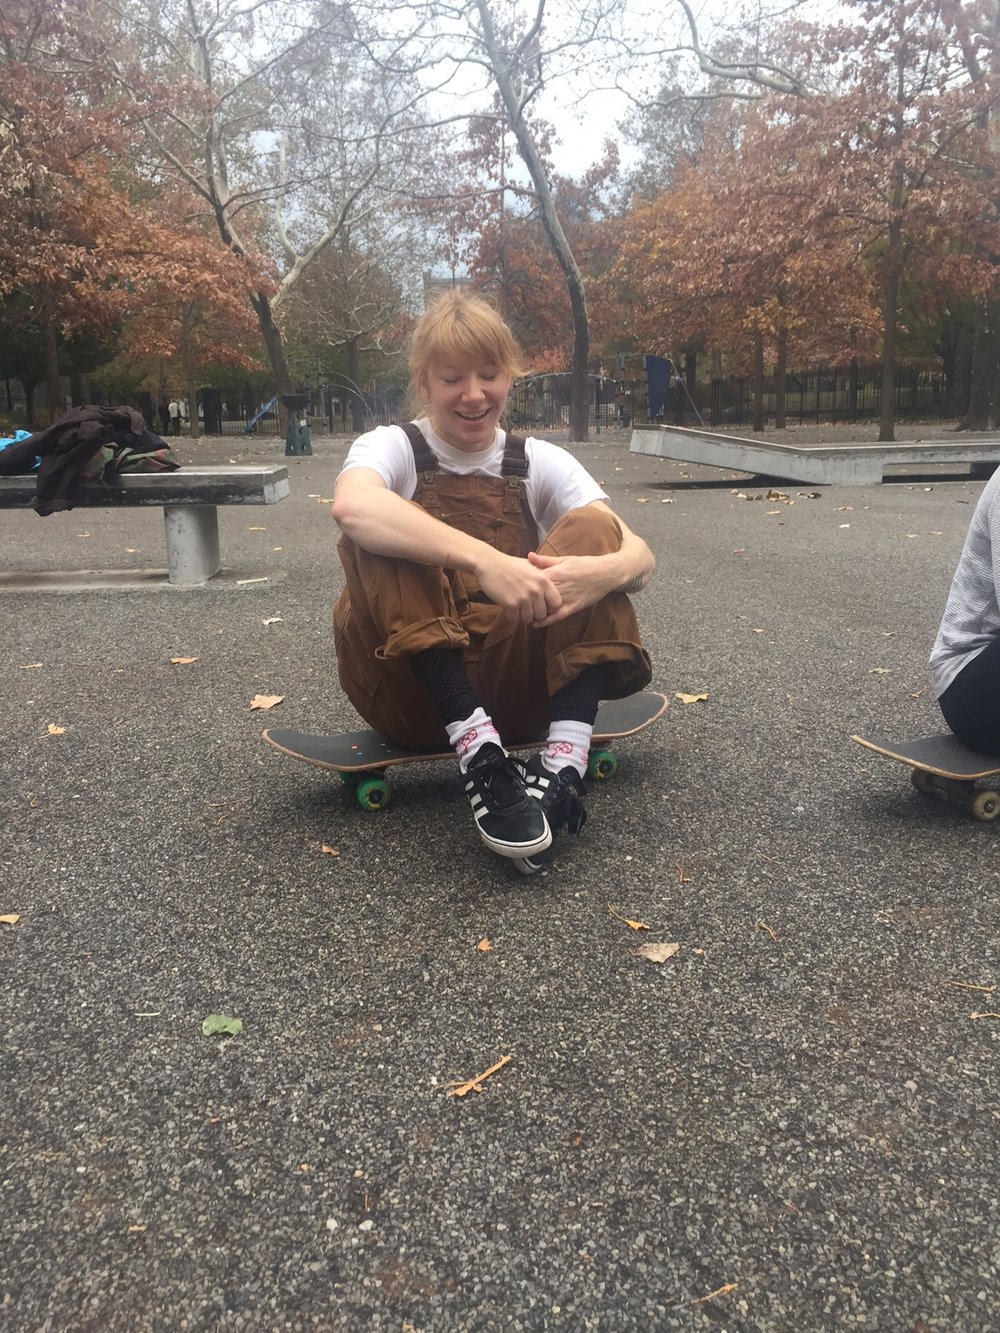 Skate crew is a go. Wassup, Helen!? Kickin it @ Brower Park in Crown Heights, BK.